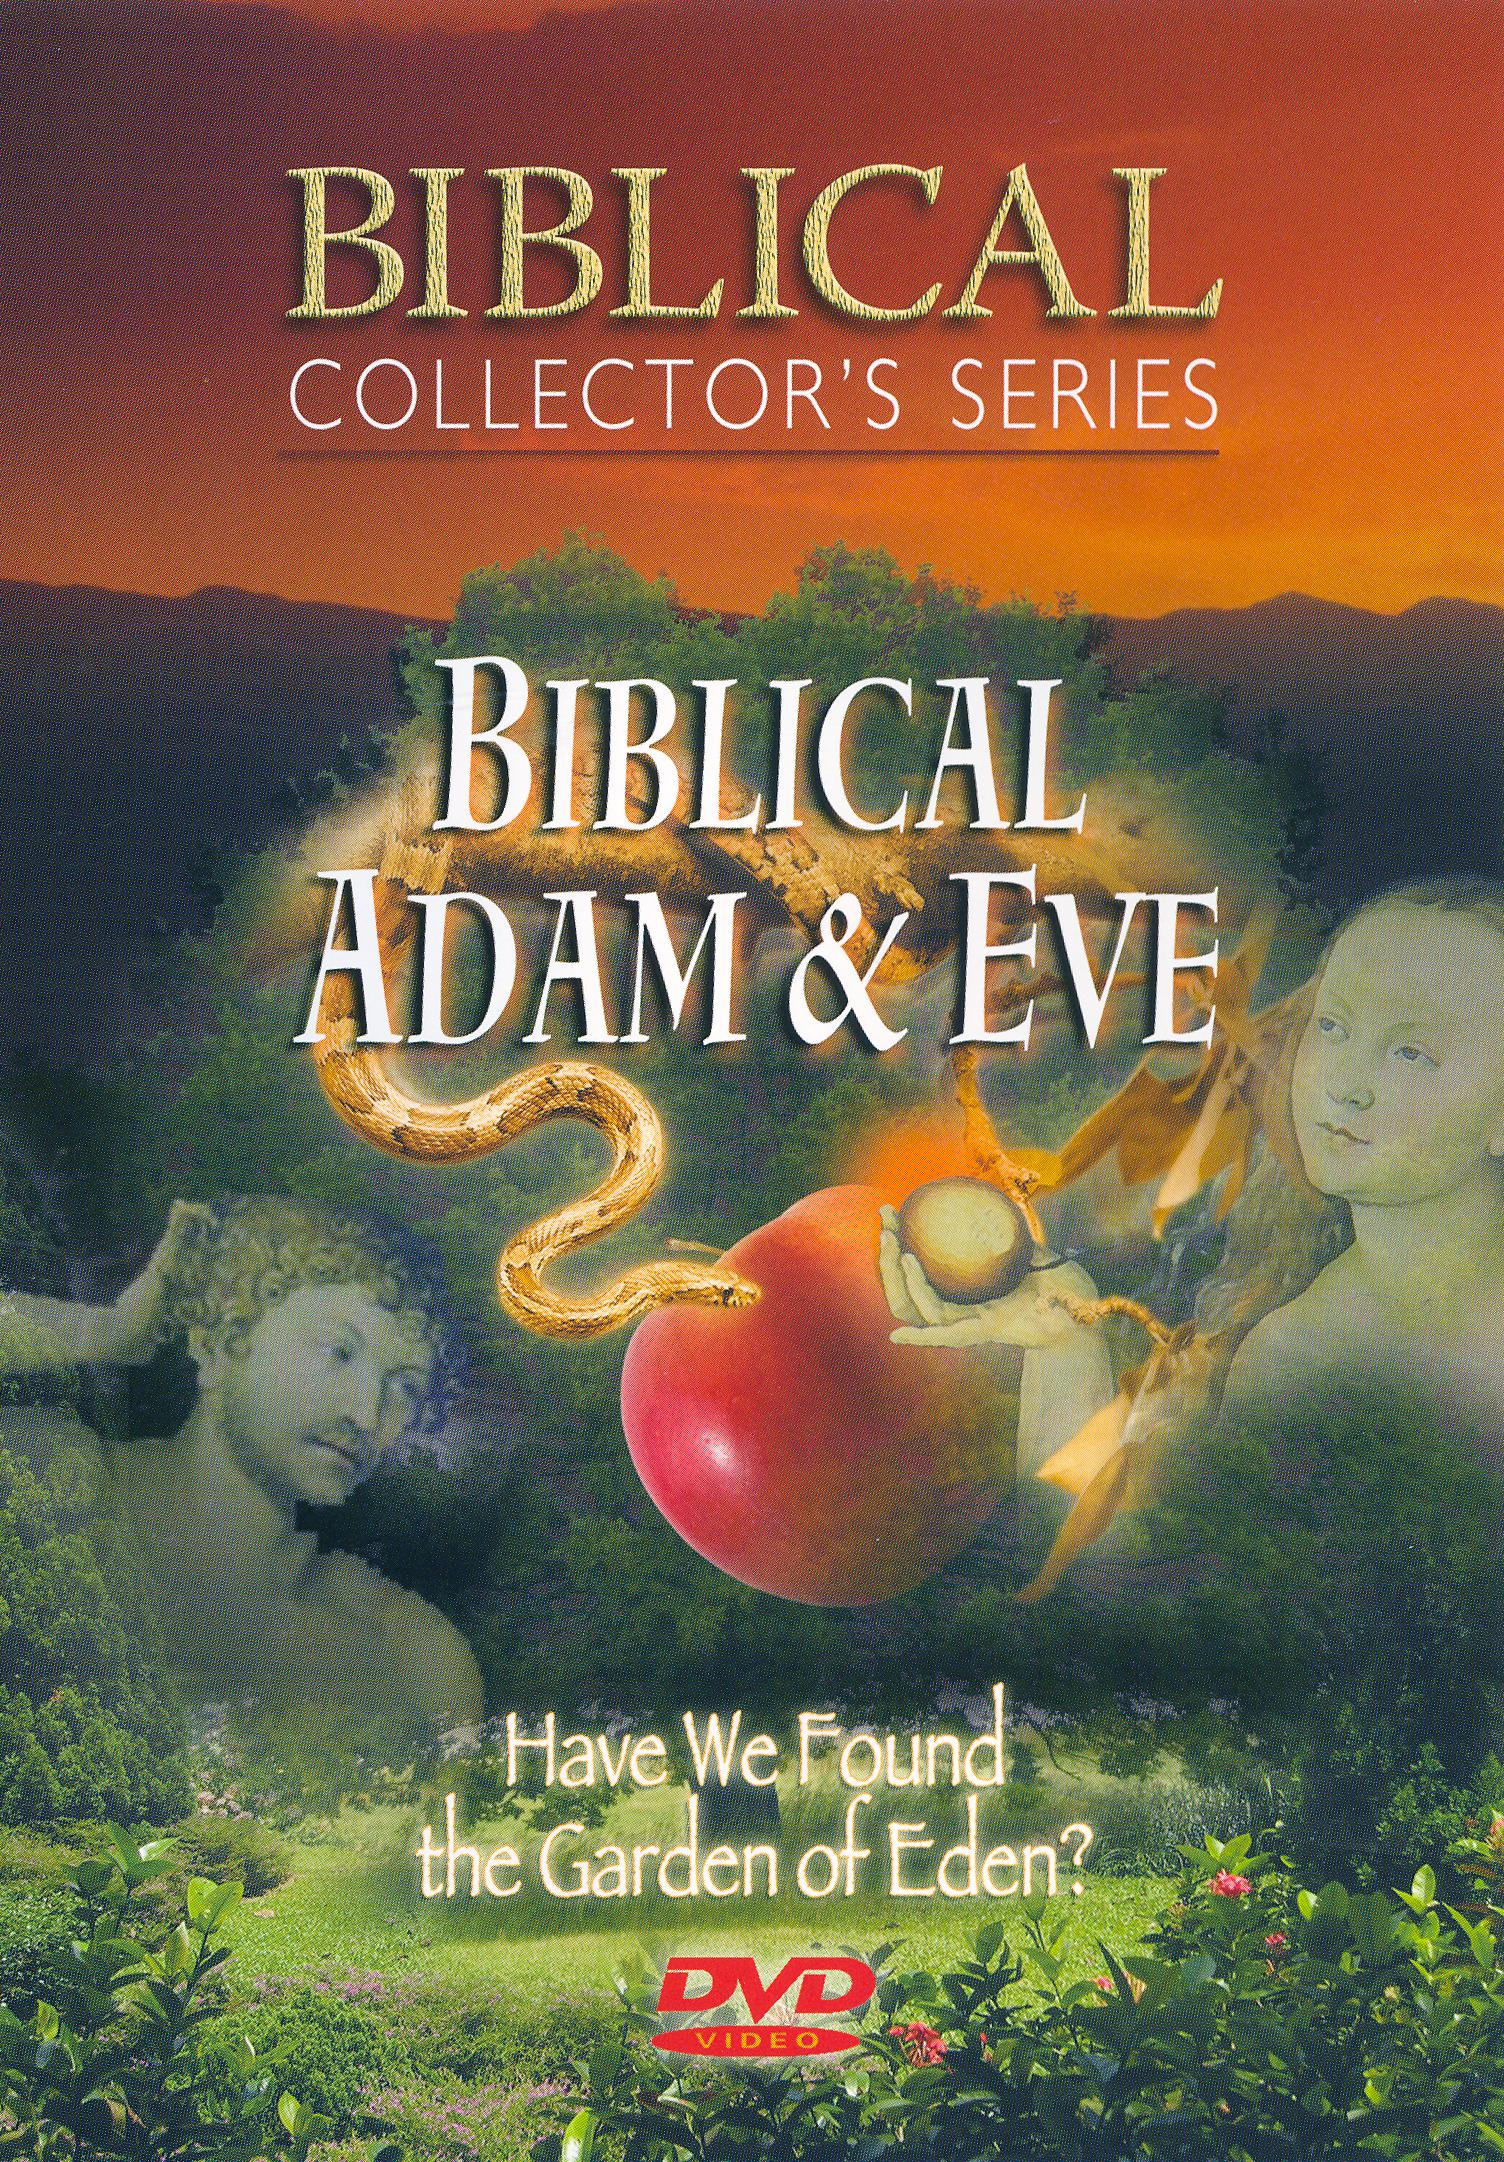 Biblical Collector's Series: Biblical Adam & Eve